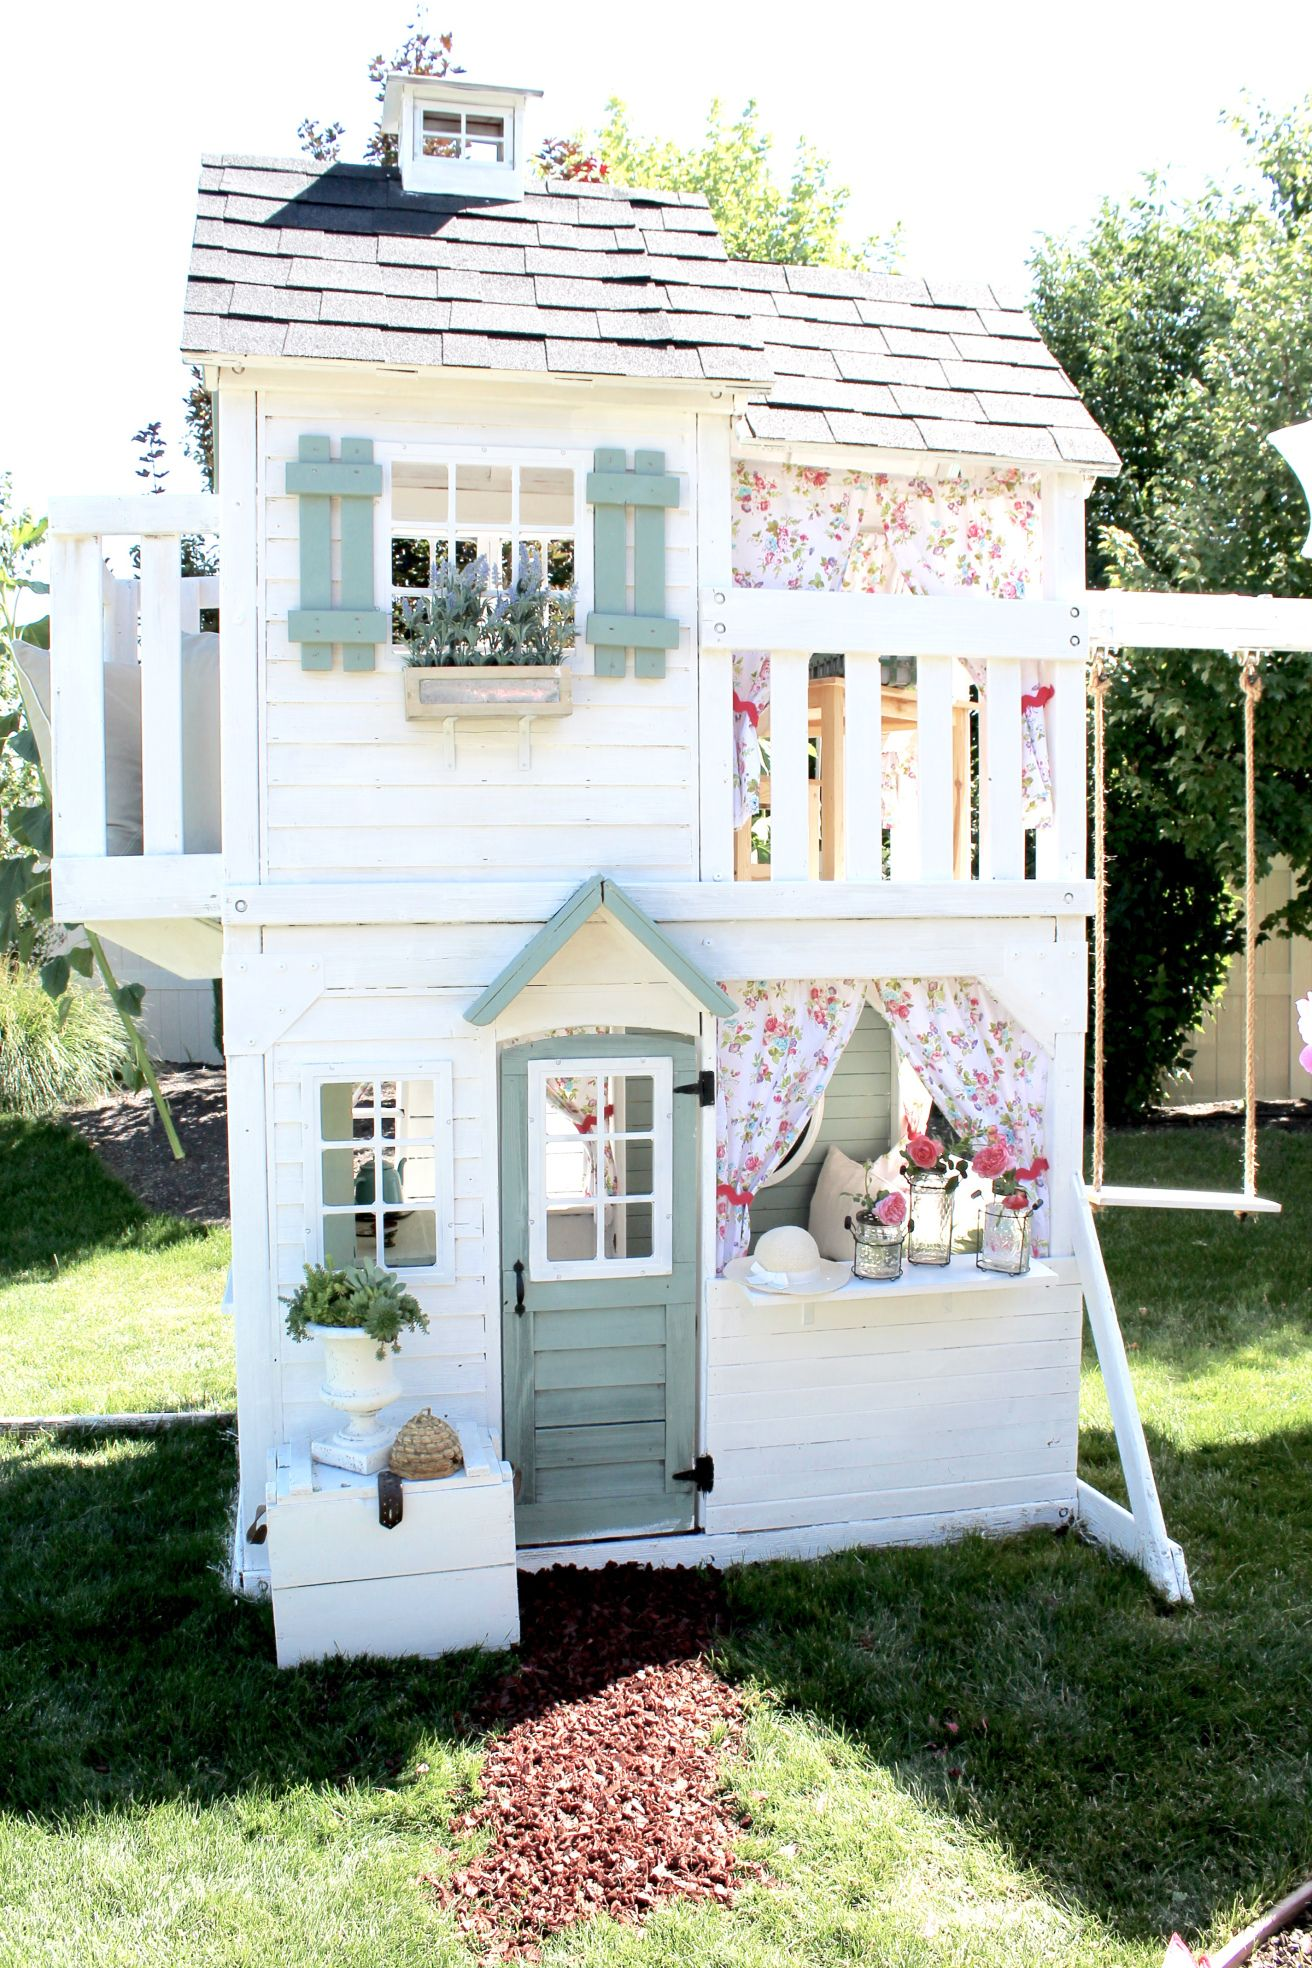 grandma made the kids playhouse look awesome outside